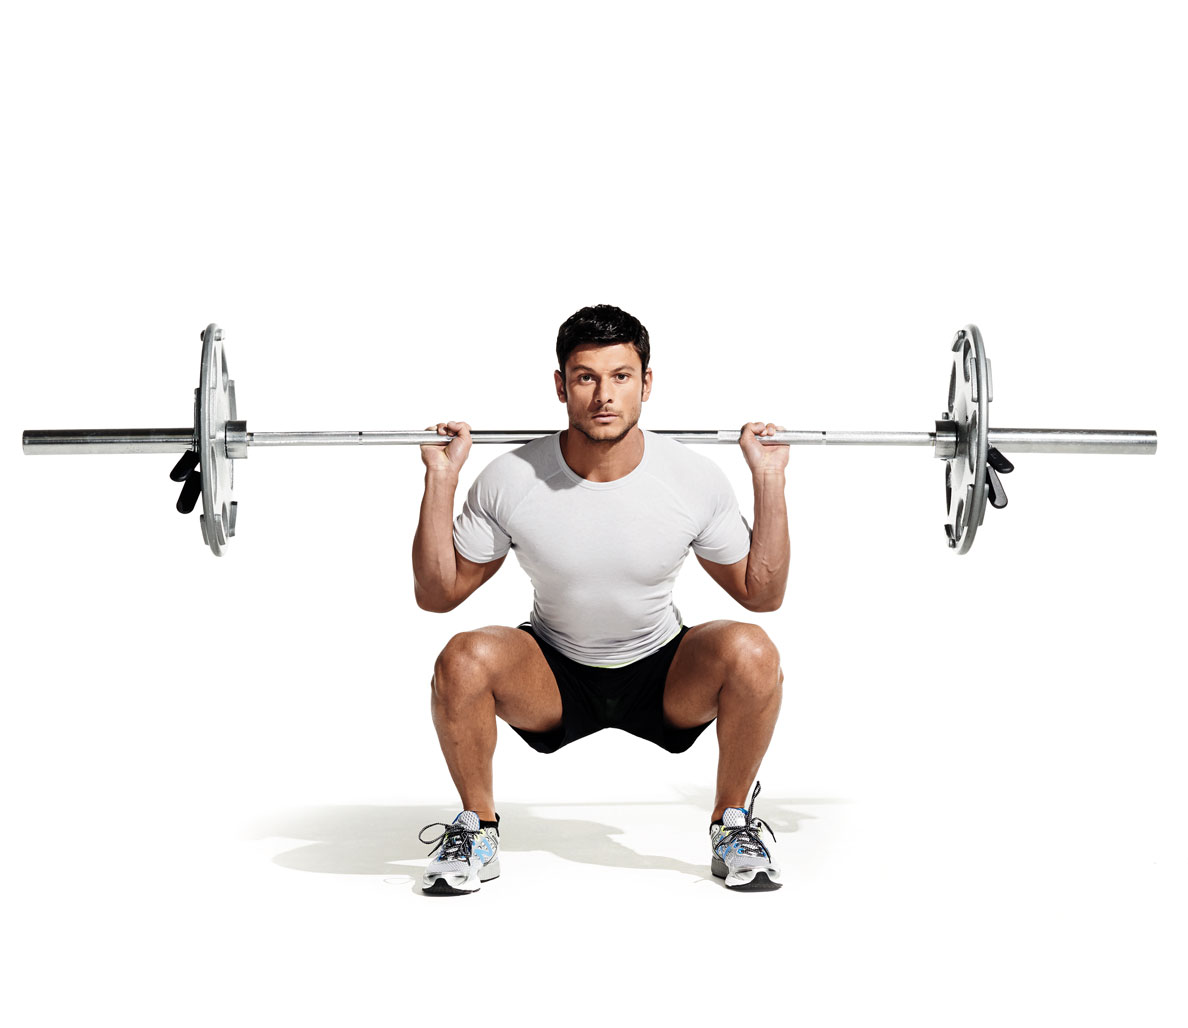 Powerlifting exercises for strength and muscle growth